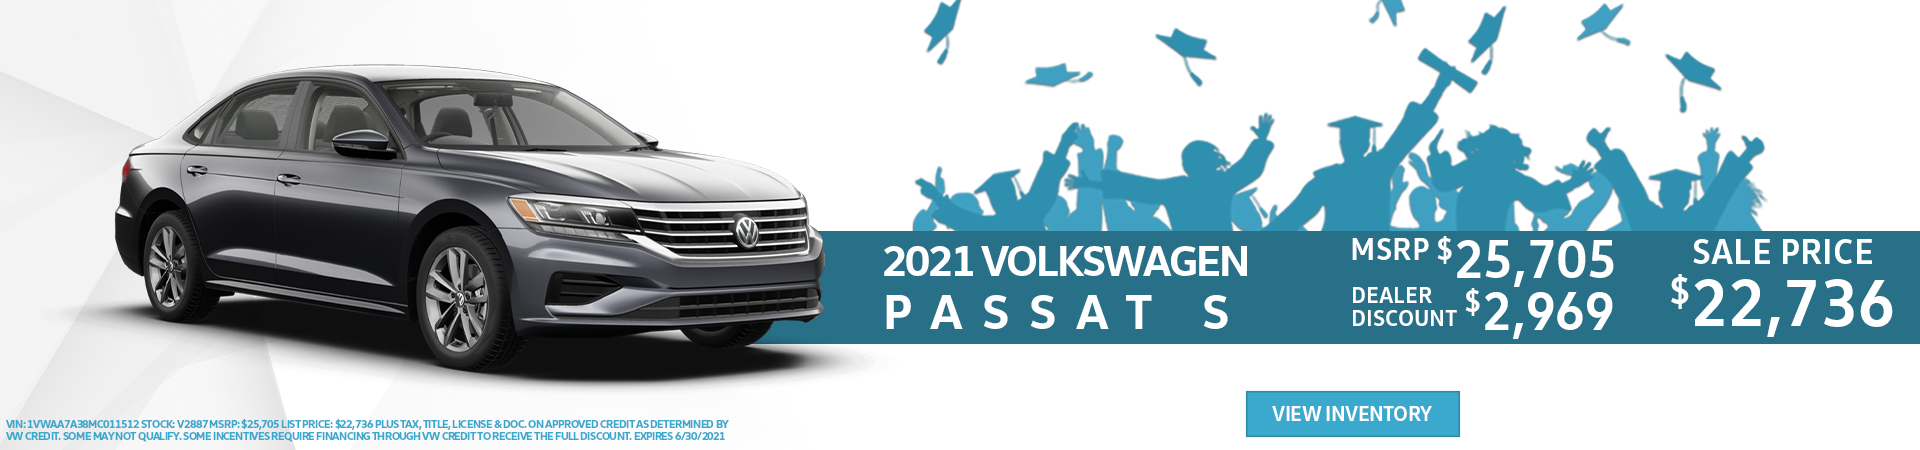 2021 Passat Offer for $2,969 Off MSRP with a Sales Price of $22,736